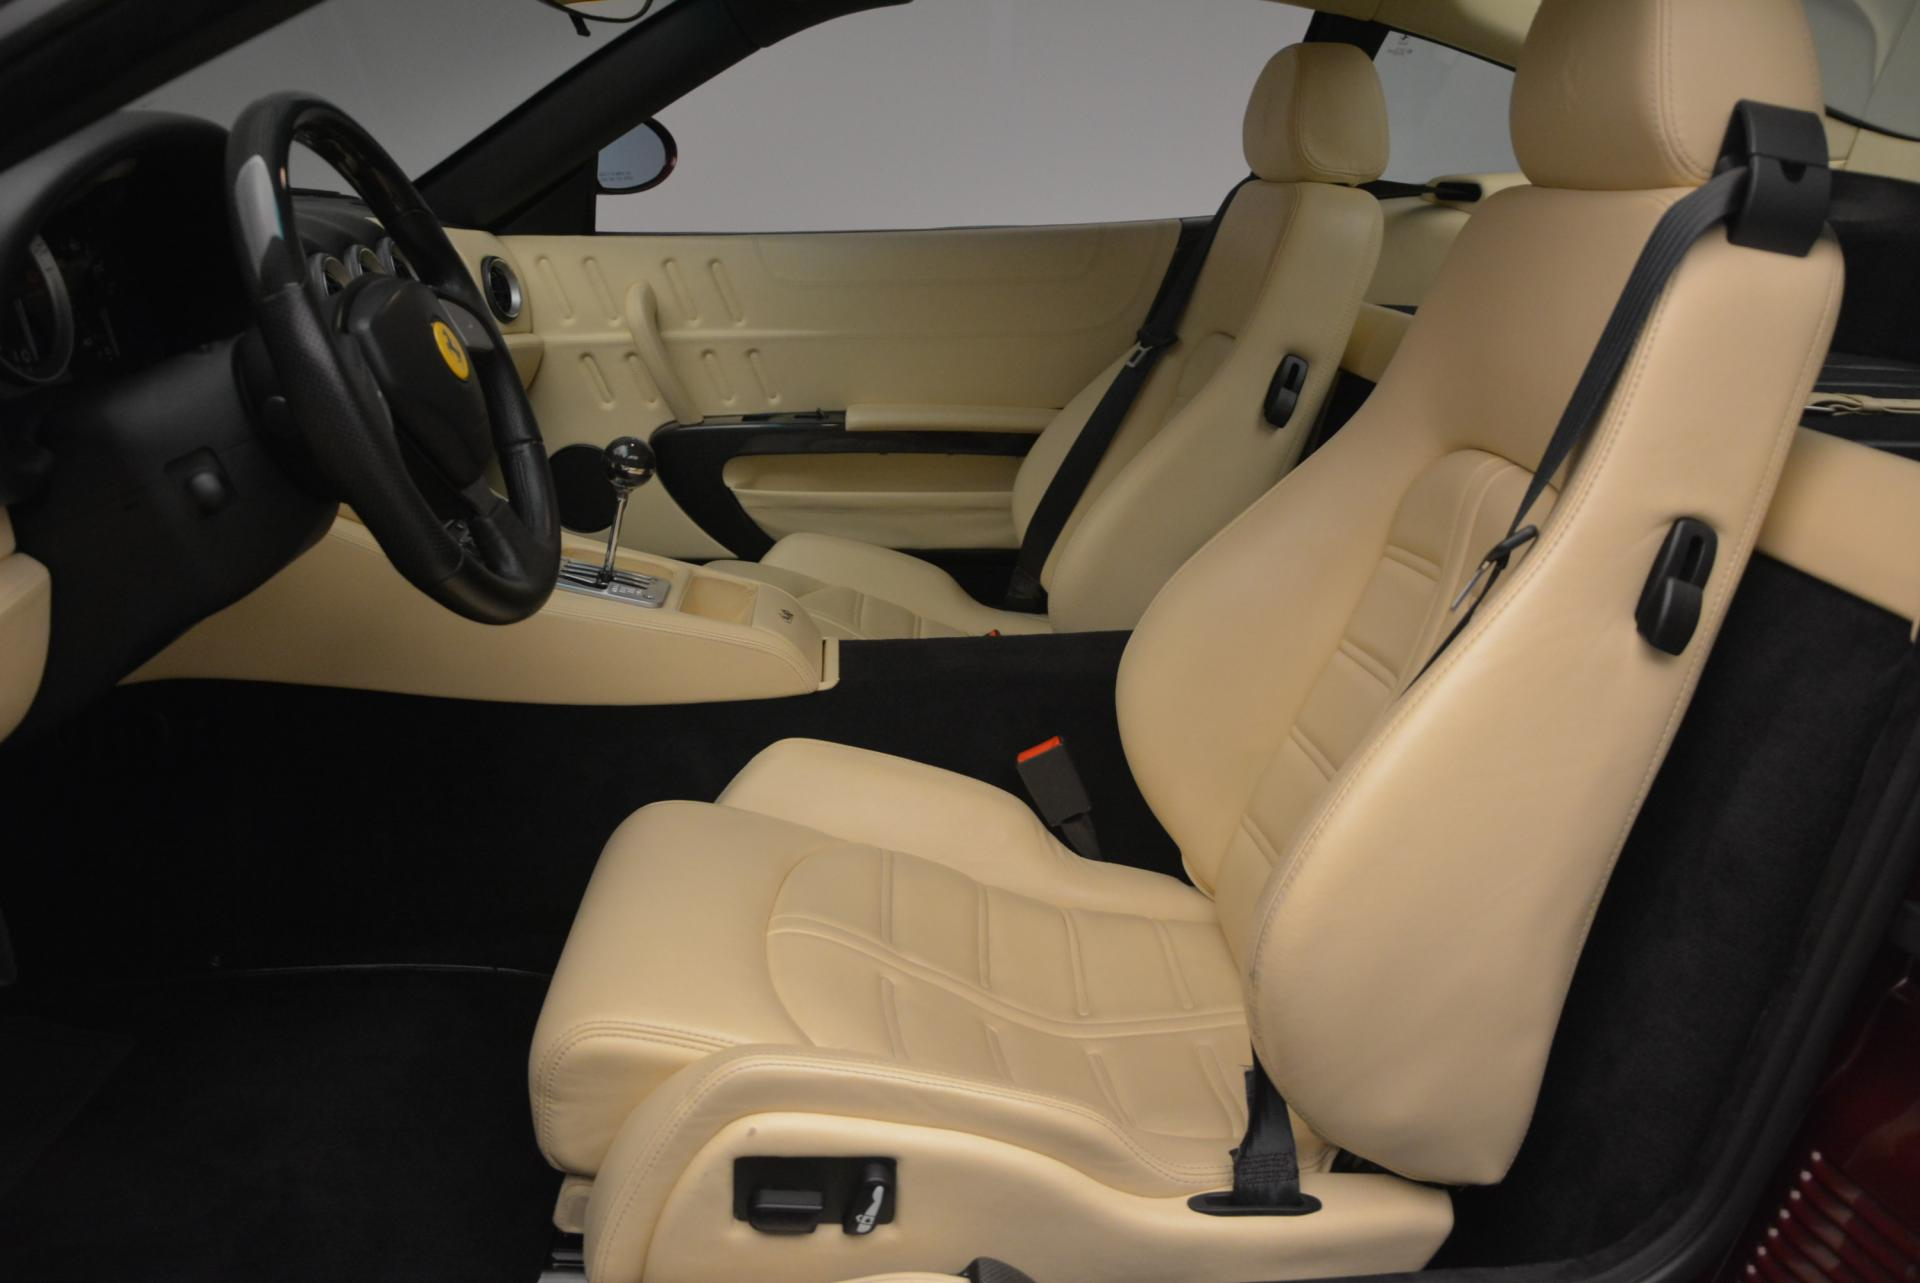 Used 2003 Ferrari 575M Maranello 6-Speed Manual For Sale In Greenwich, CT 143_p14